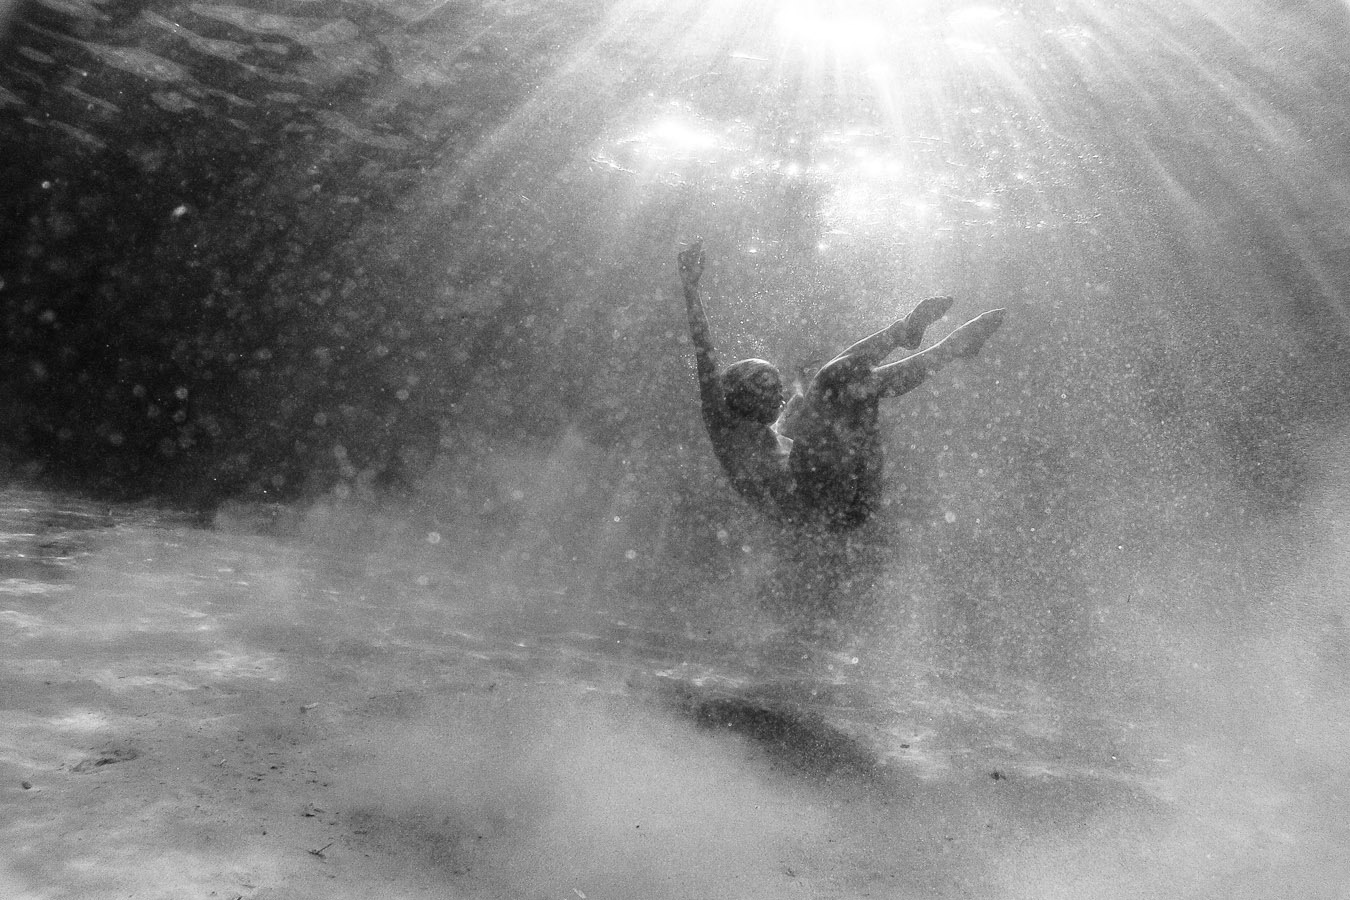 Underwater_by_Enrico_Tabacchi-1.jpeg